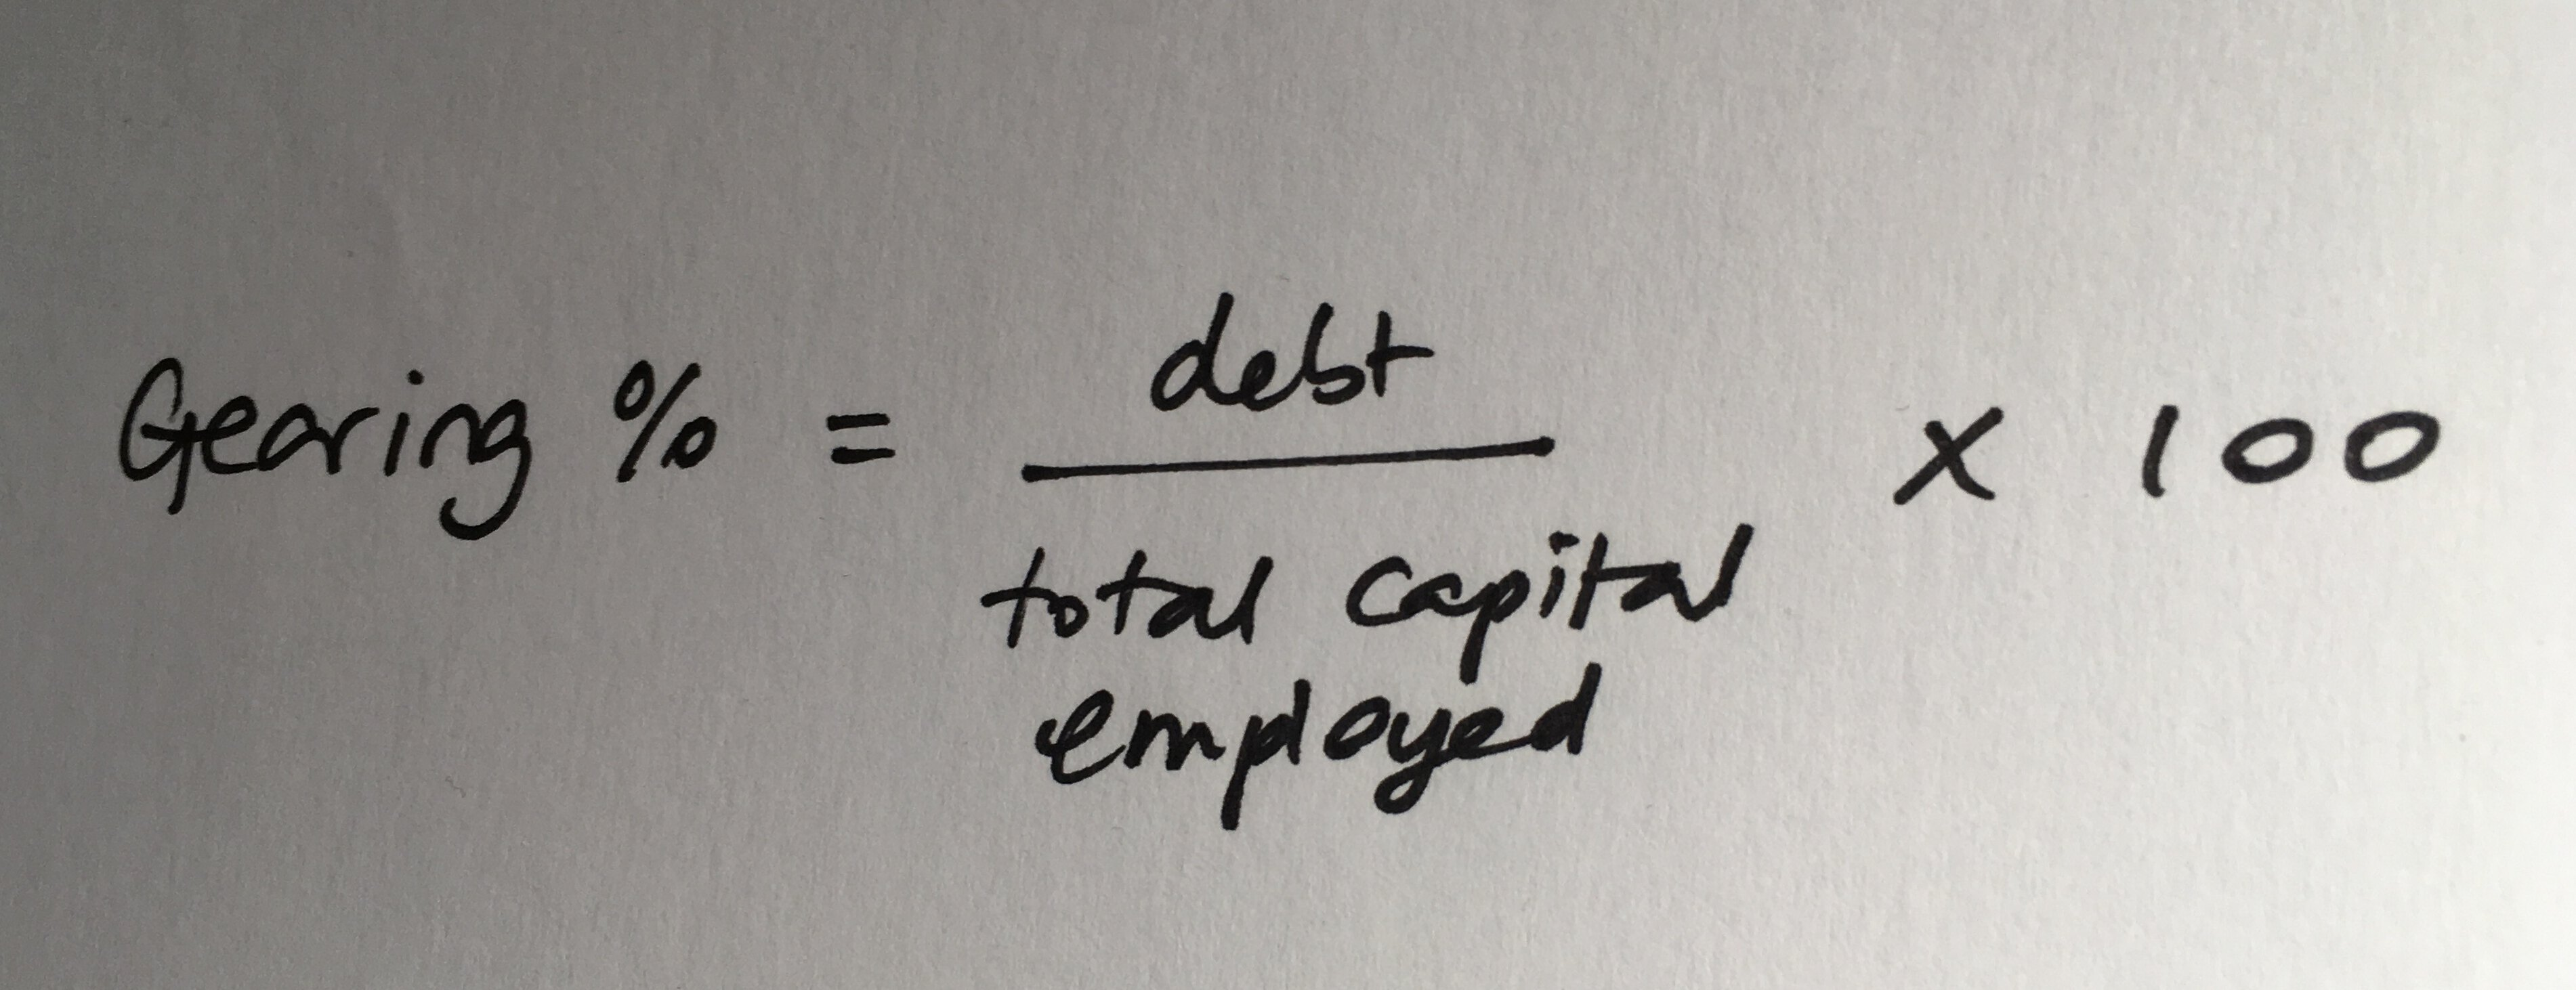 Gearing % = debt/total capital employed x 100